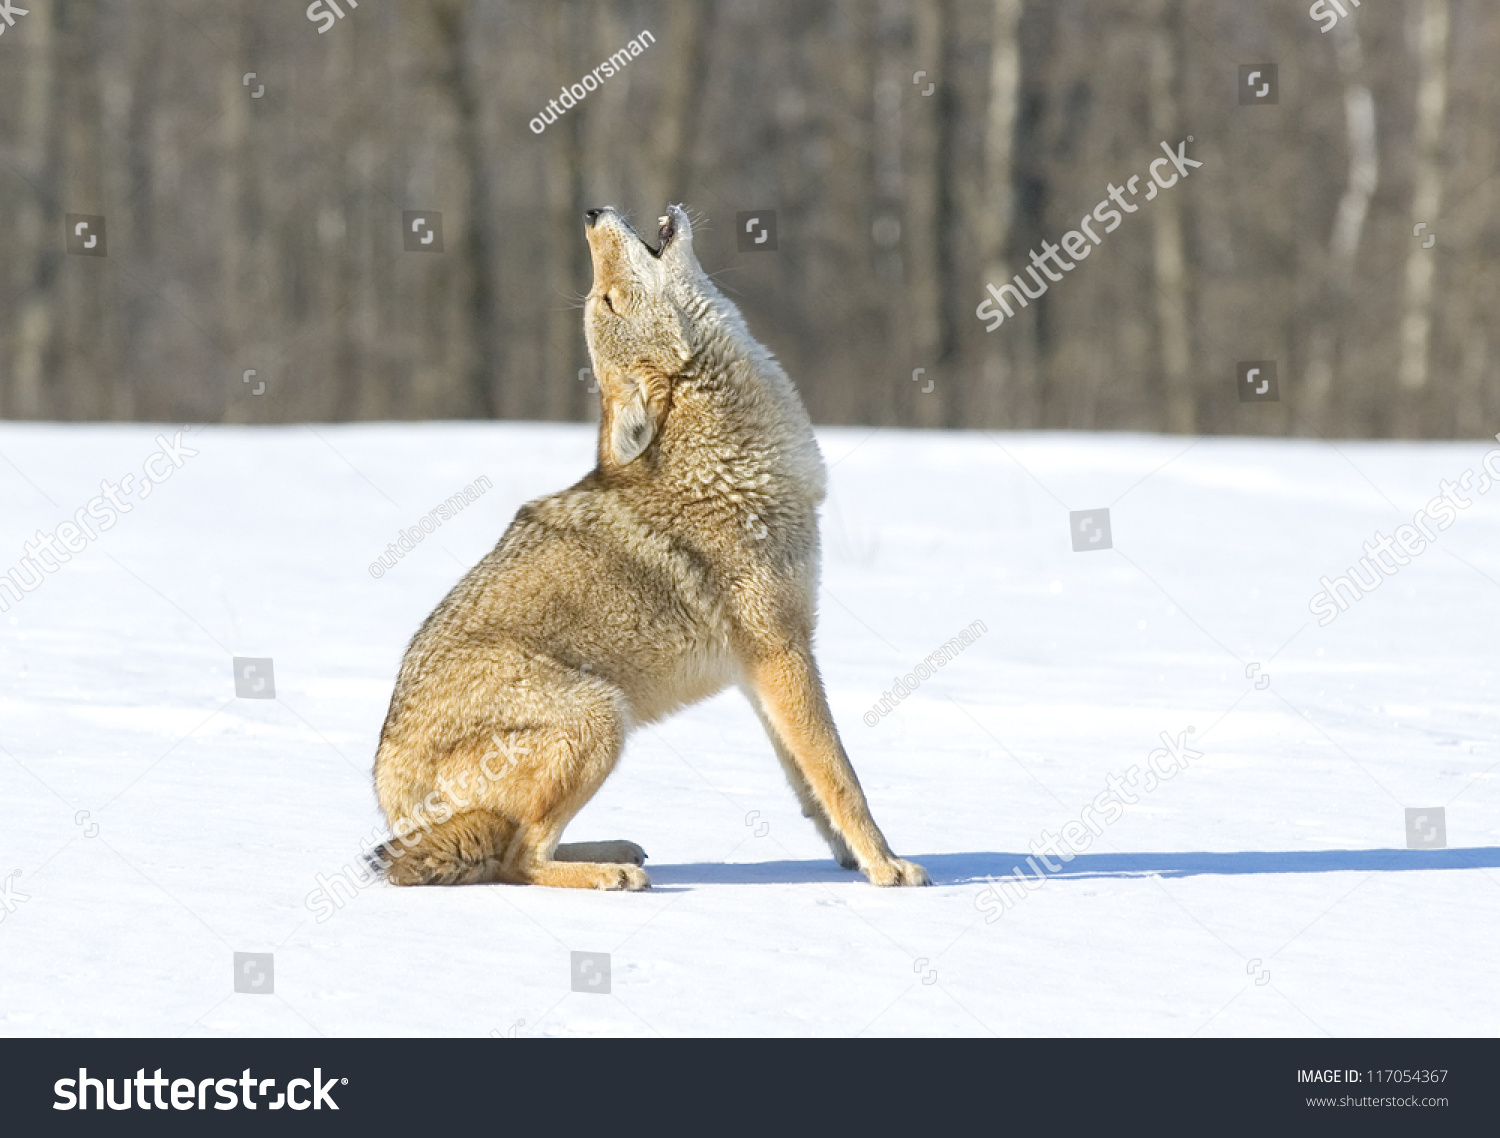 Image result for image of a coyote howling